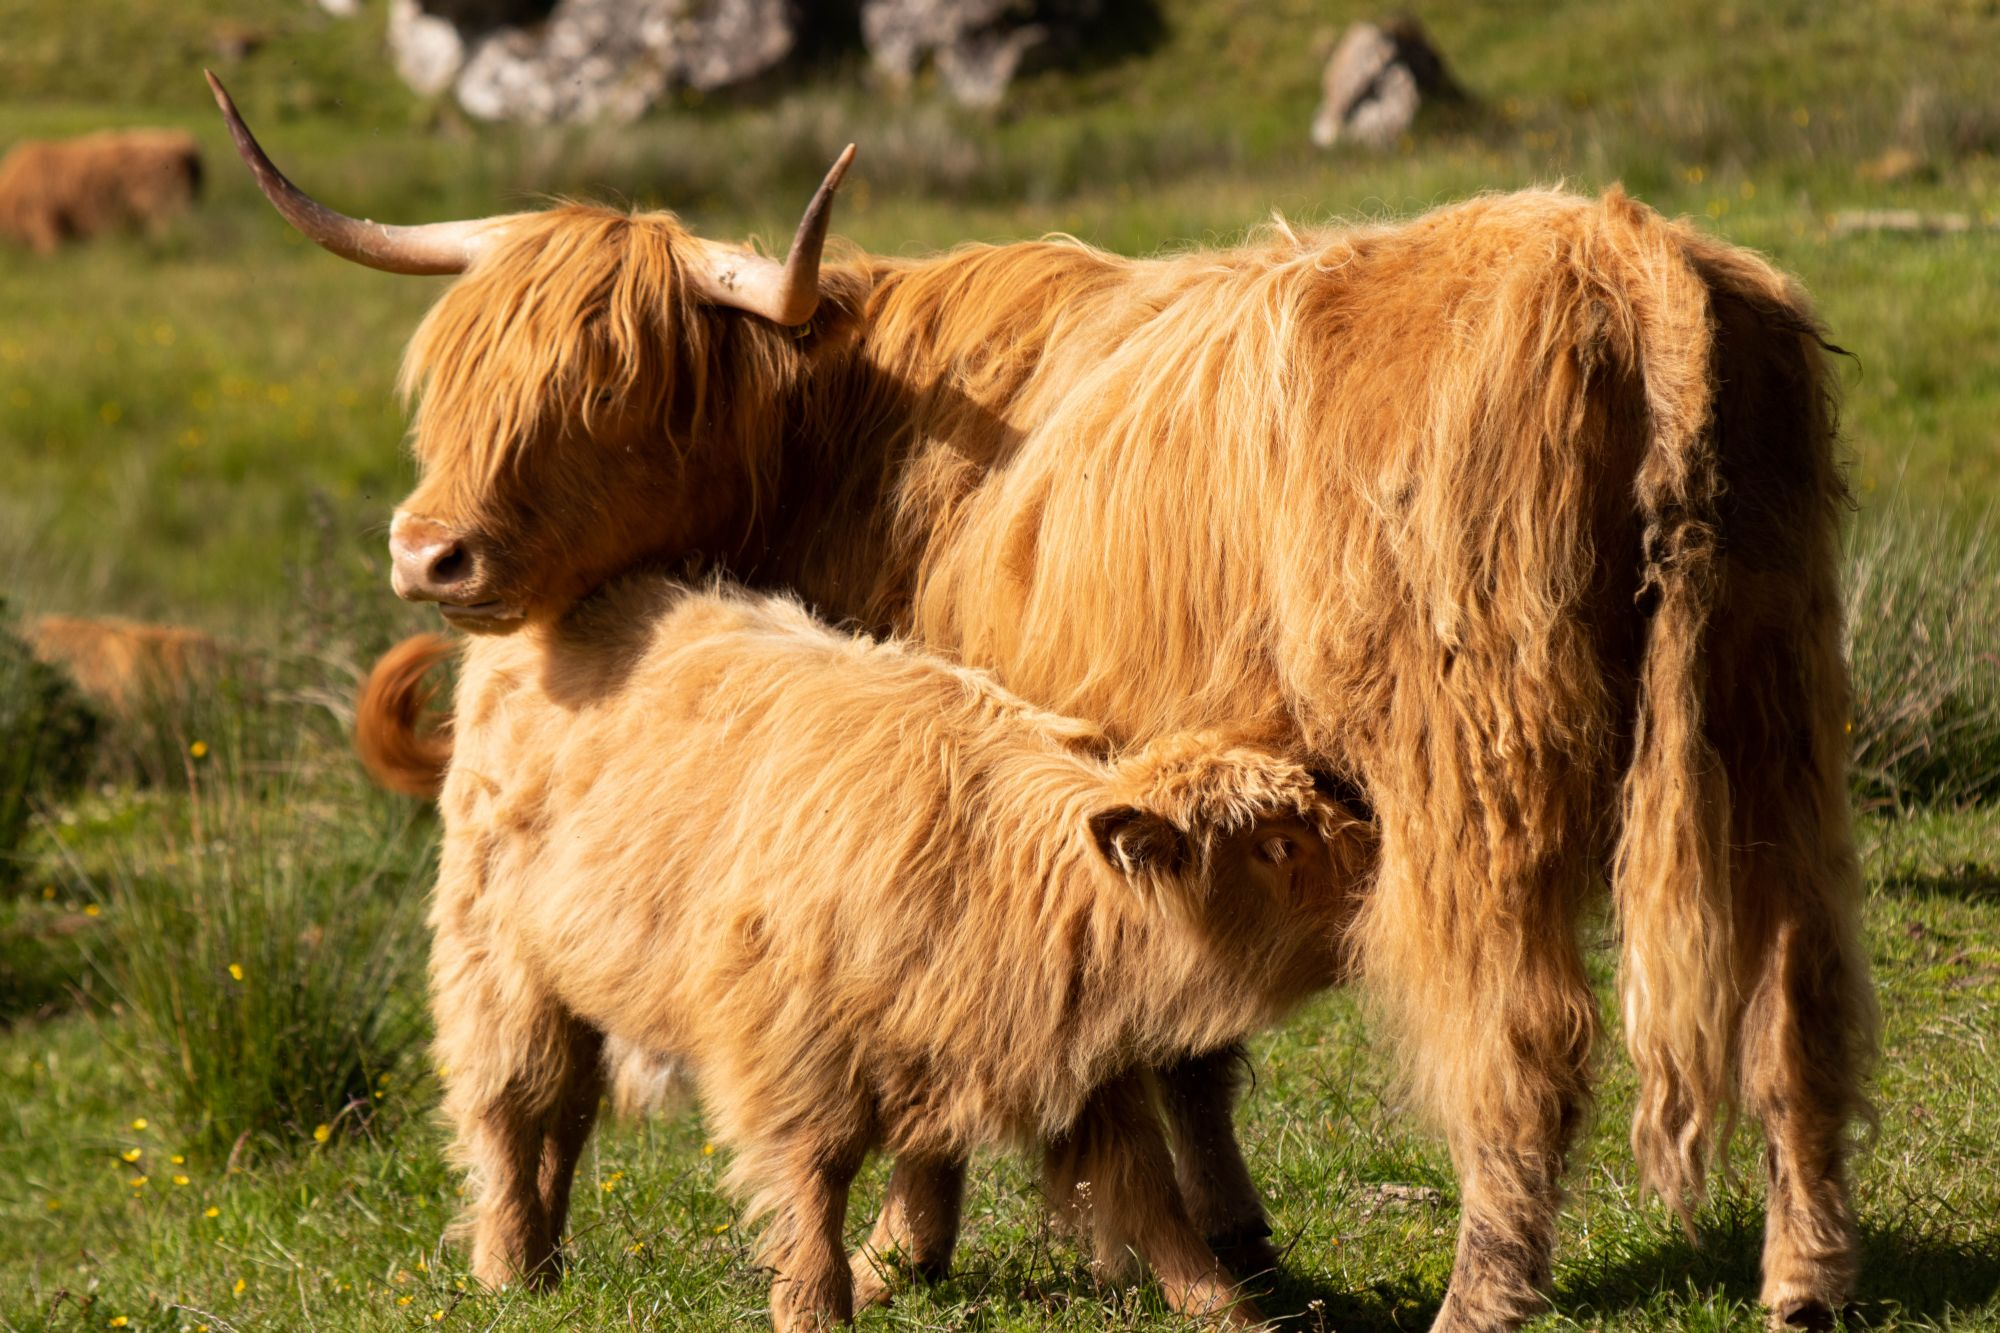 Hairy coos - so sweet